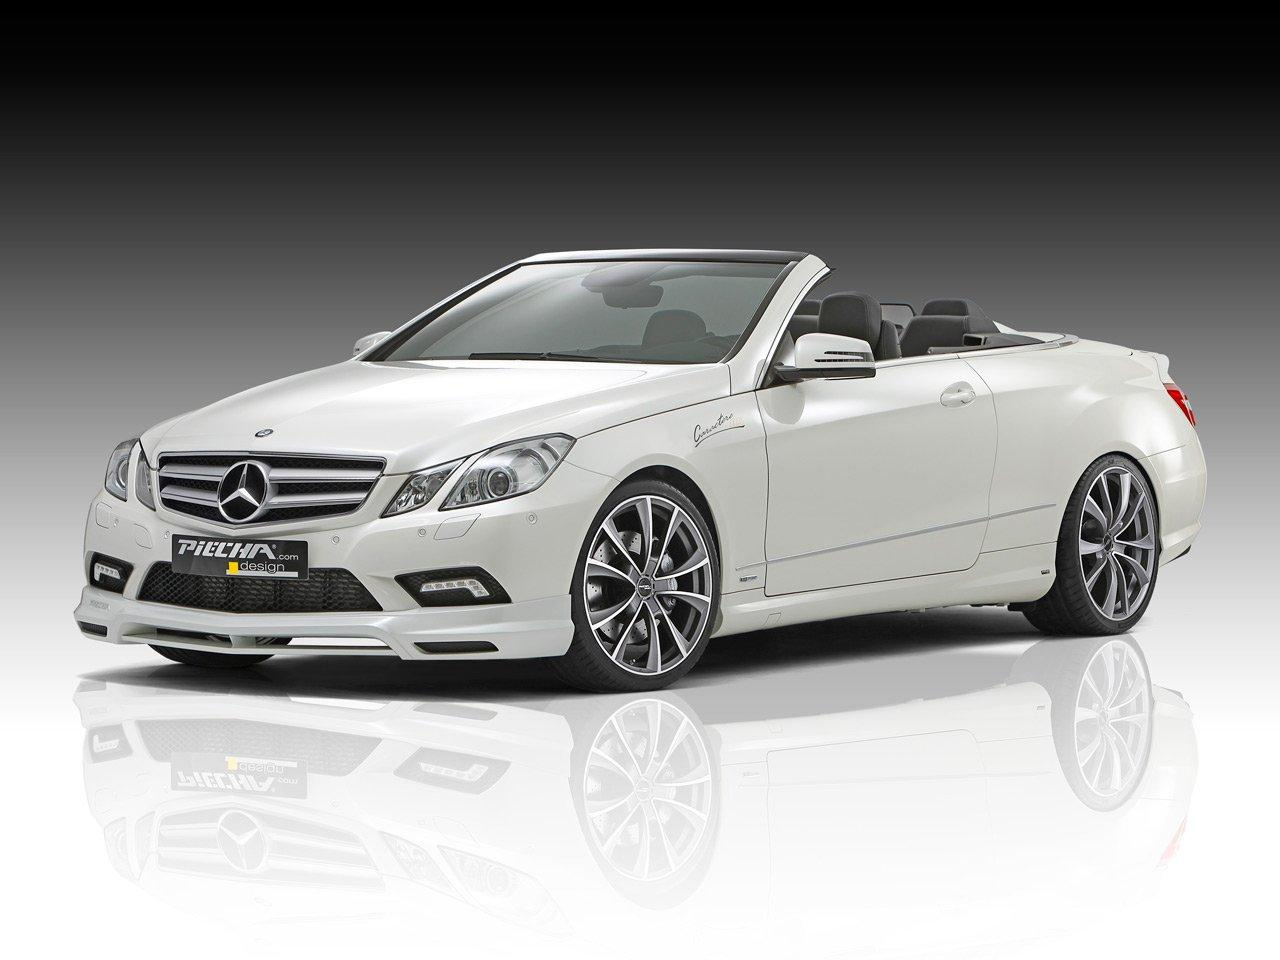 mercedes-benz-e-class-coupe-i-cabrio-ot-piecha-design-1336717620-6.jpg